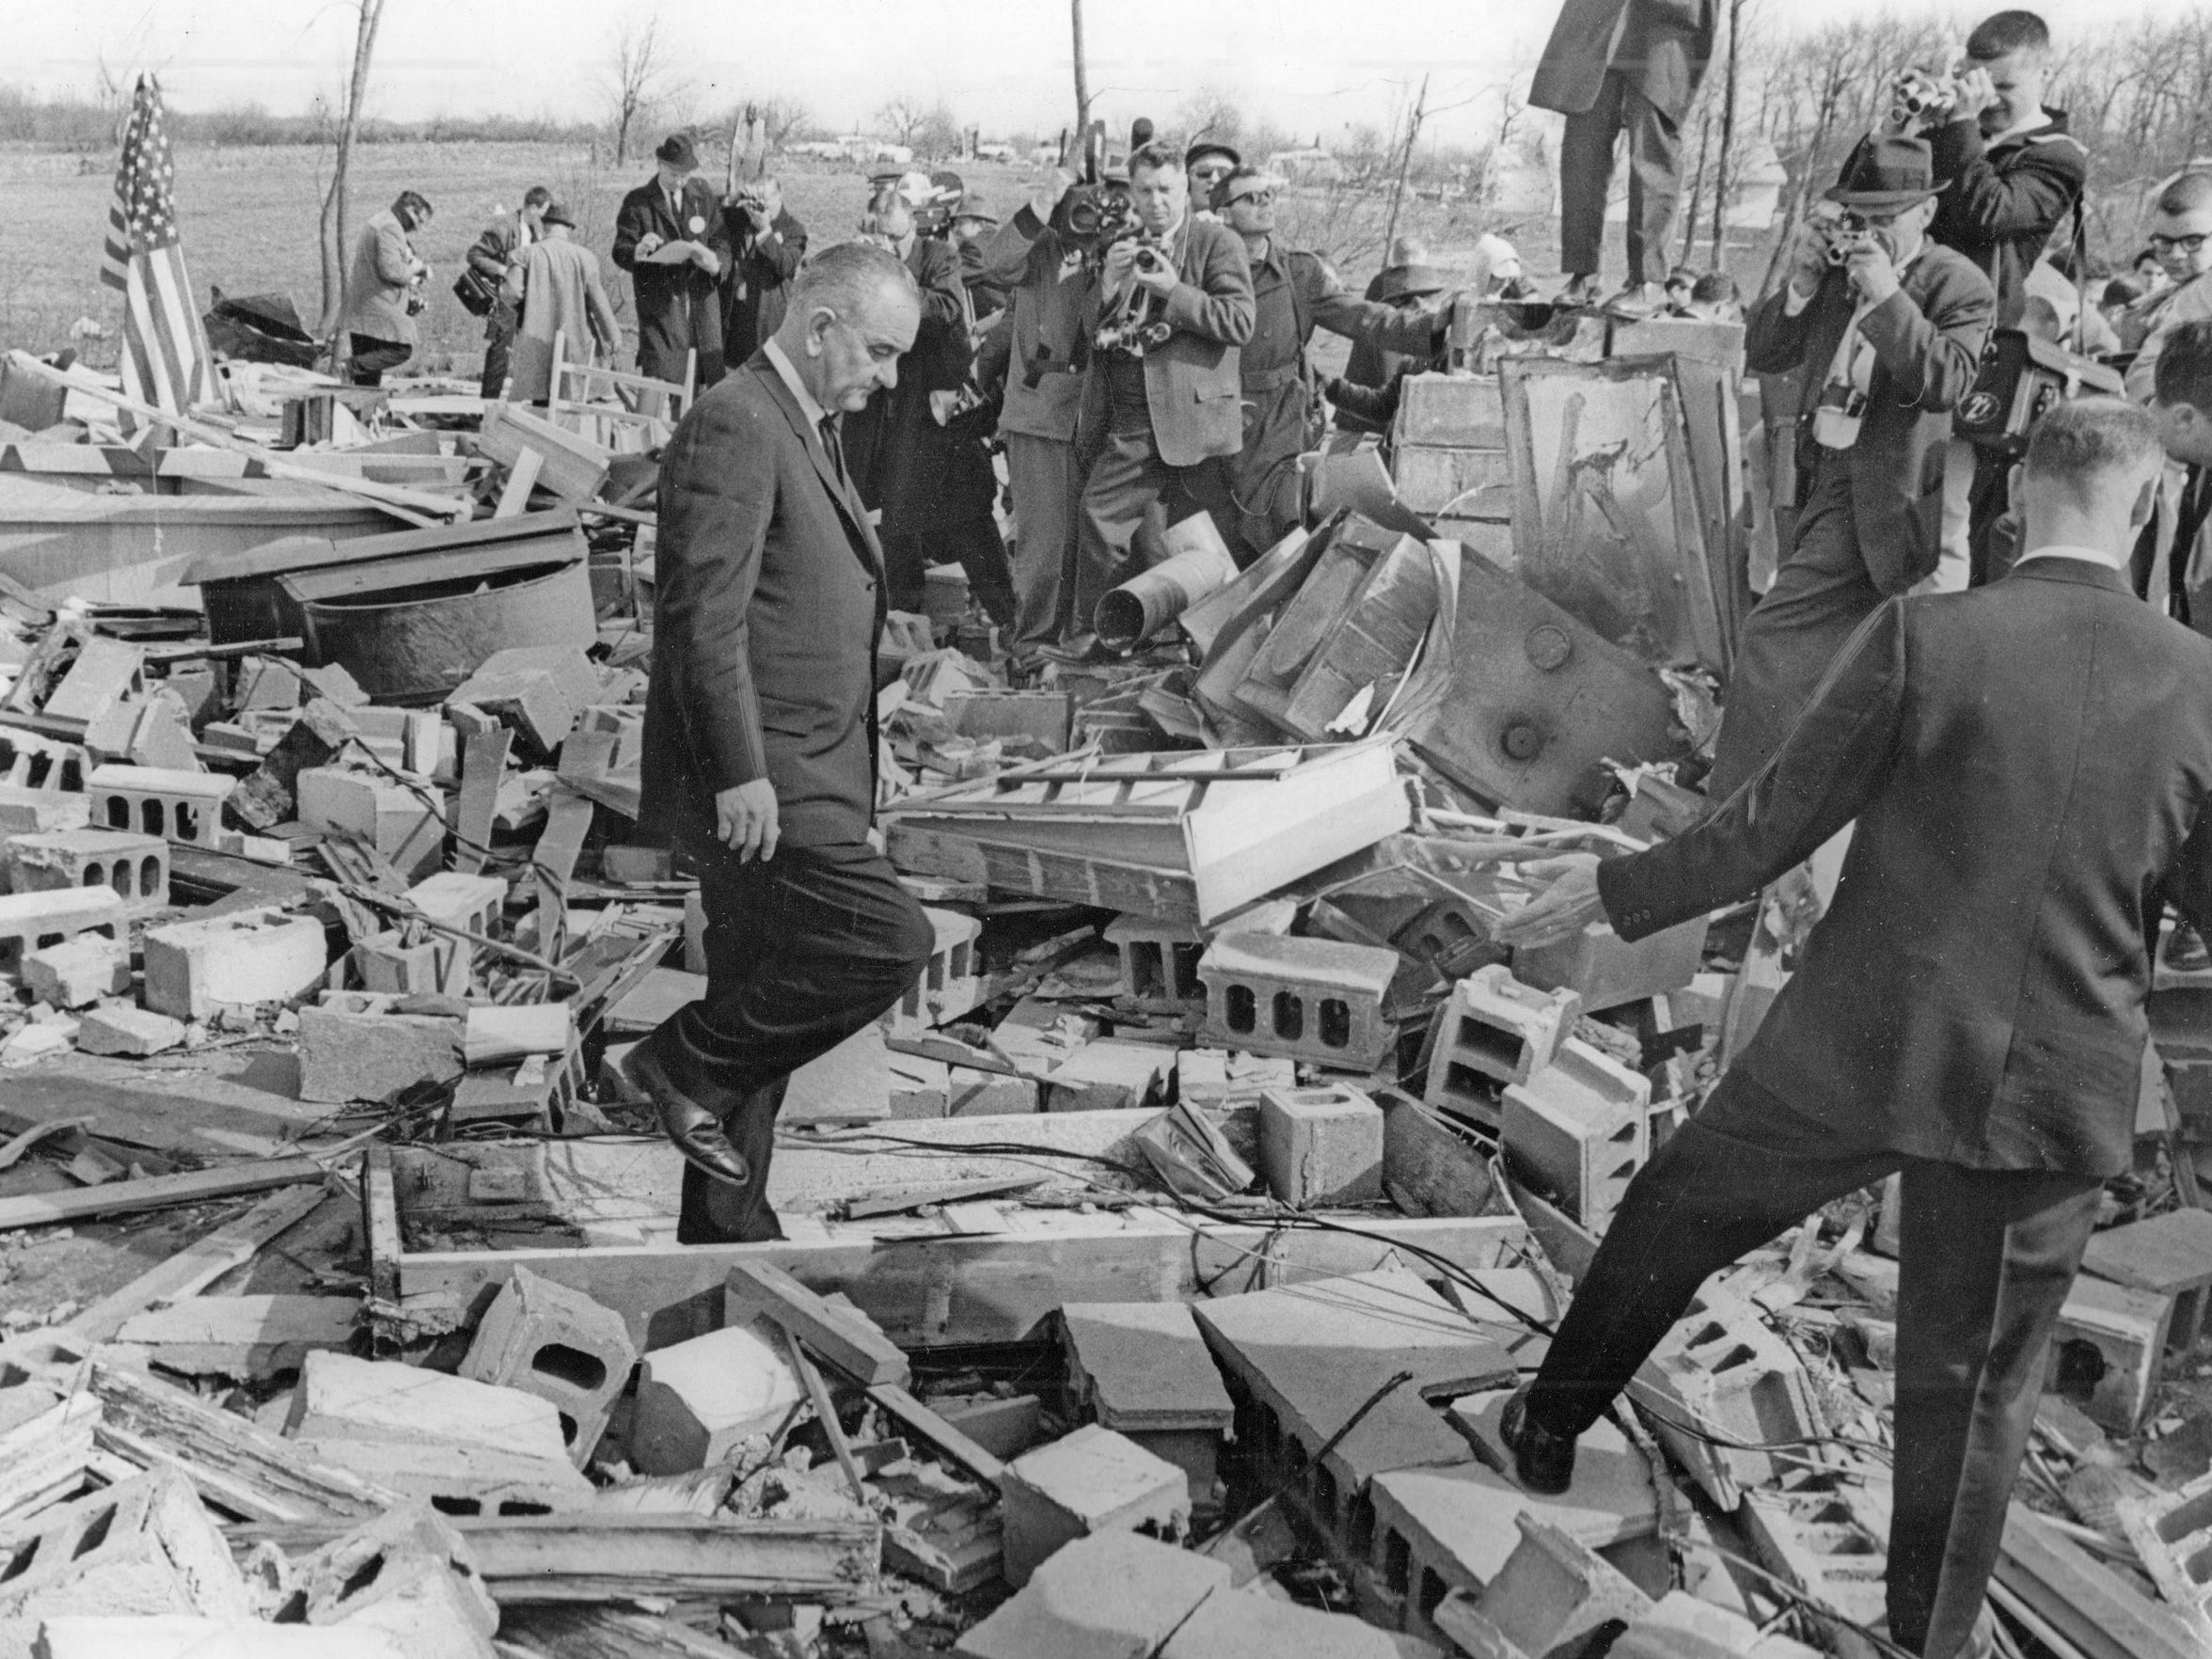 President Lyndon Johnson views the rubble at Dunlap following the Palm Sunday tornadoes on April 11, 1965. Johnson declared a state of emergency in Indiana.